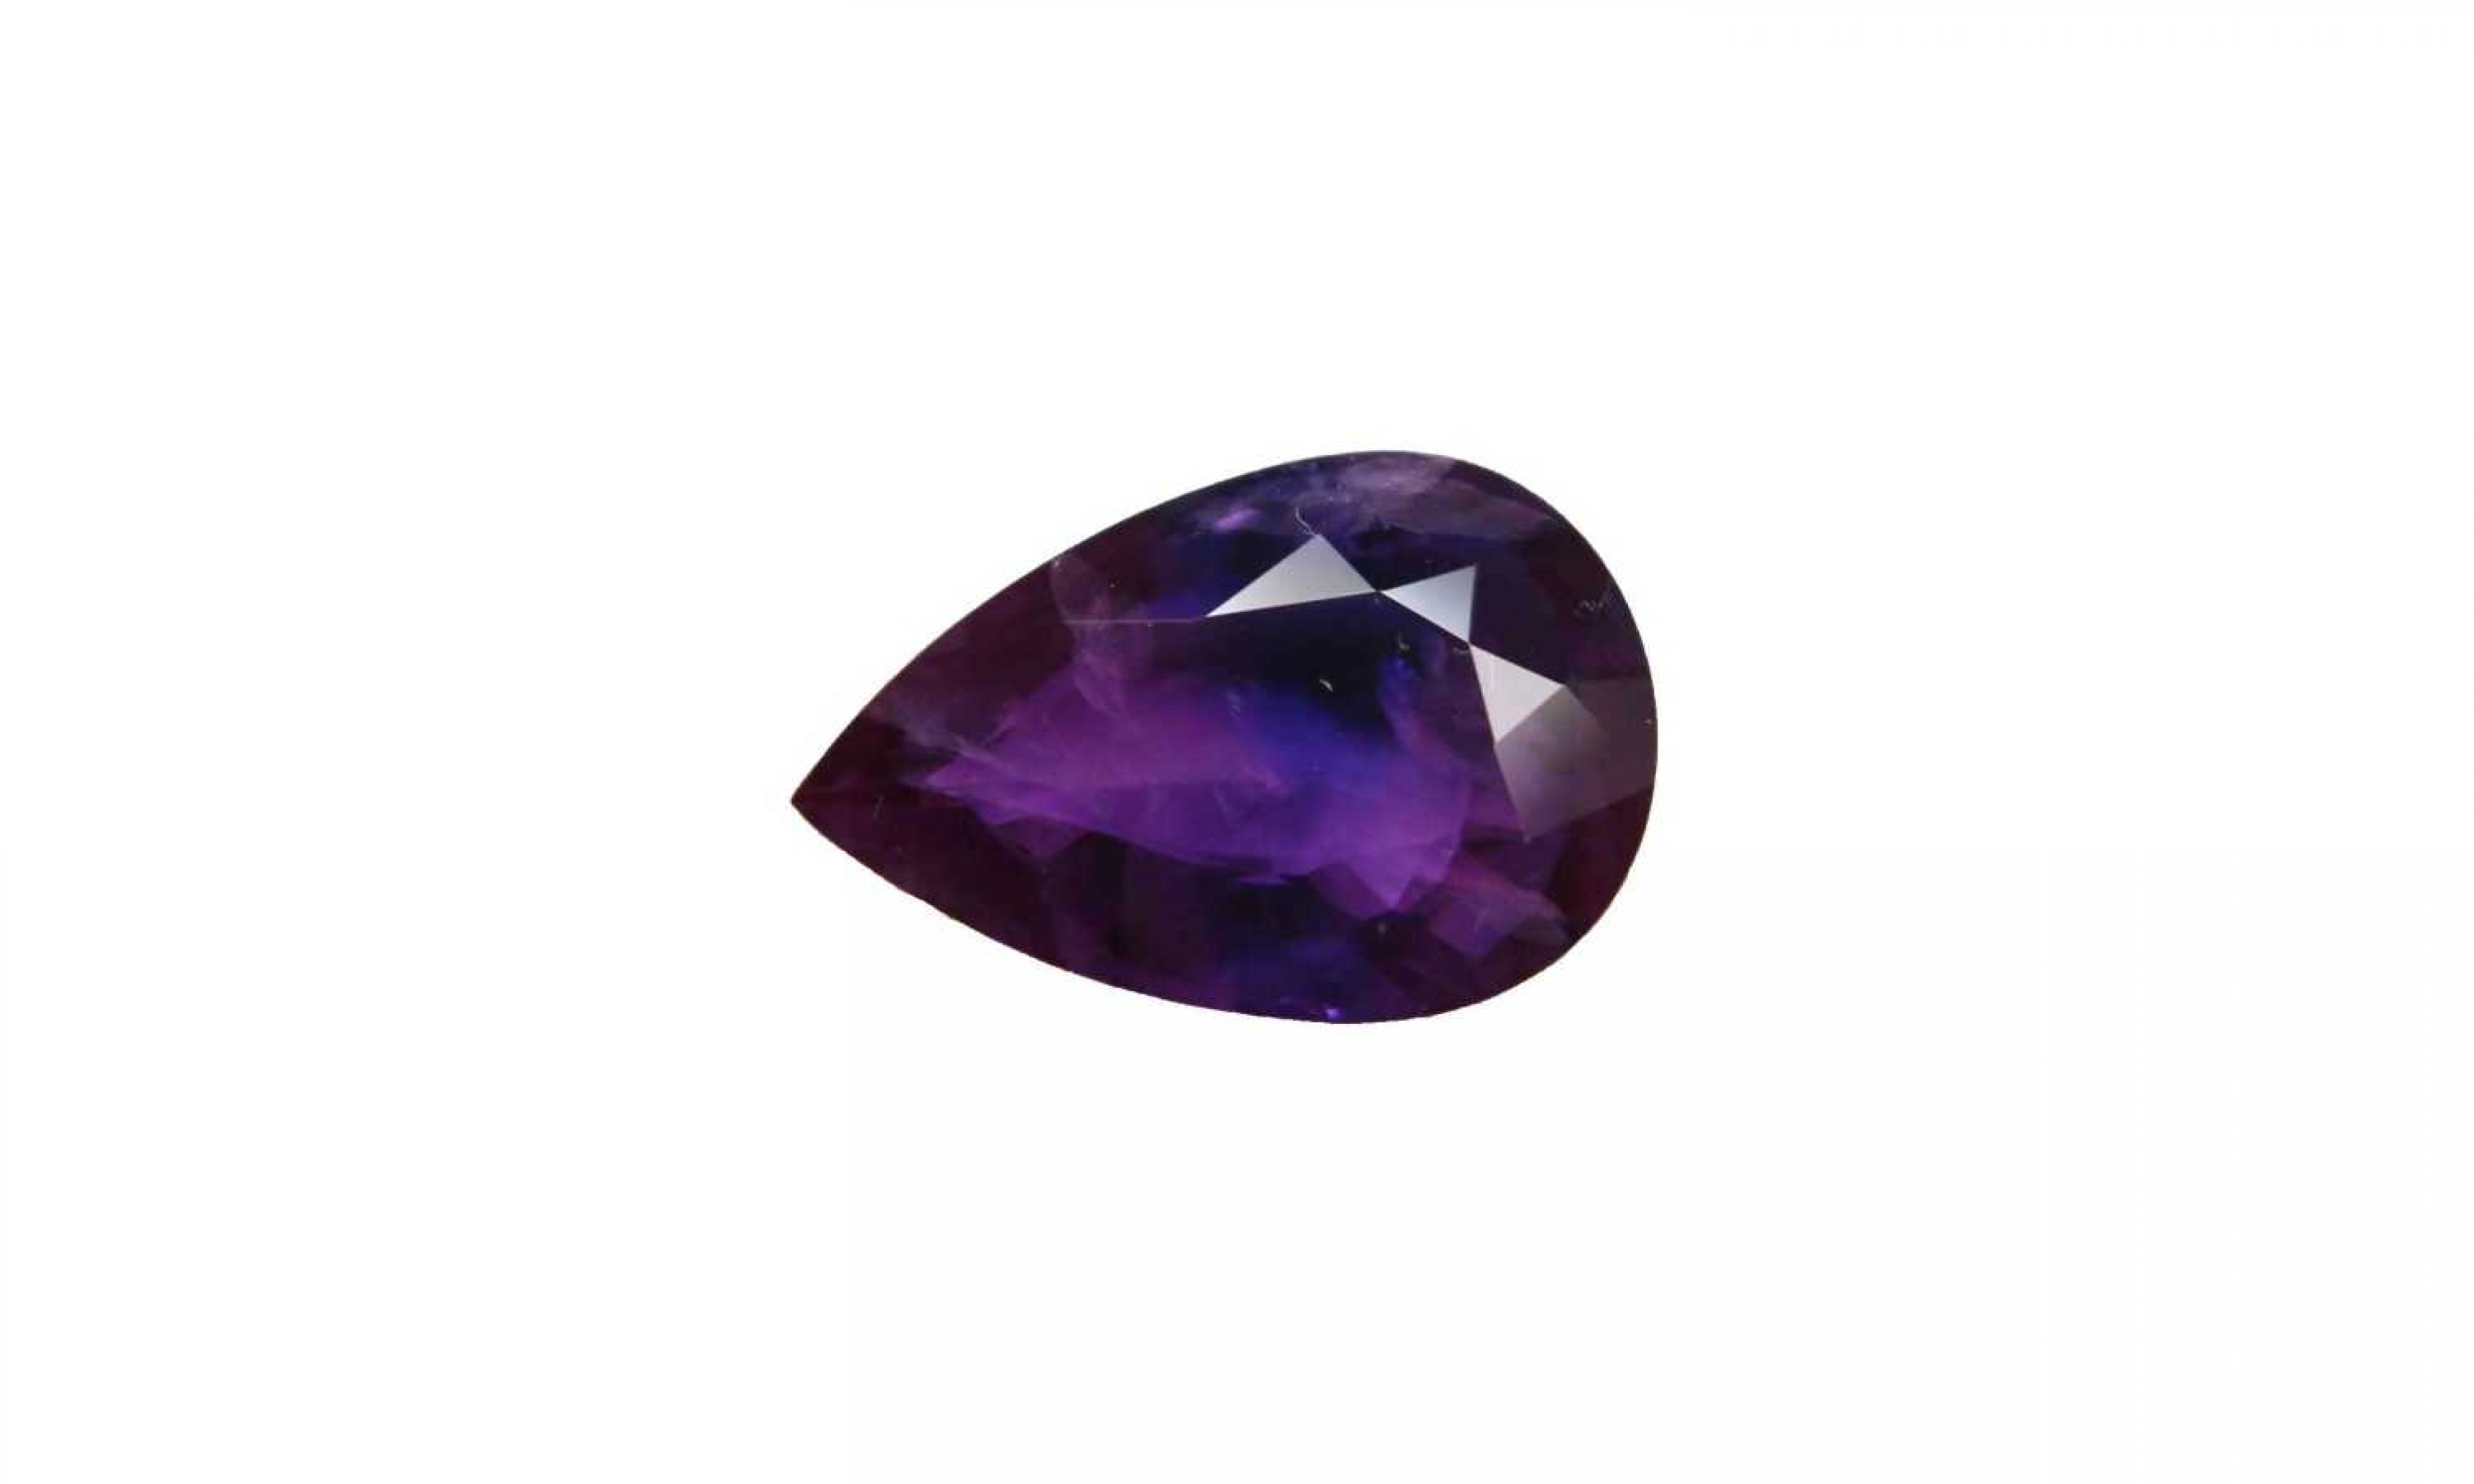 Inclusions are beautiful purple sapphire 1